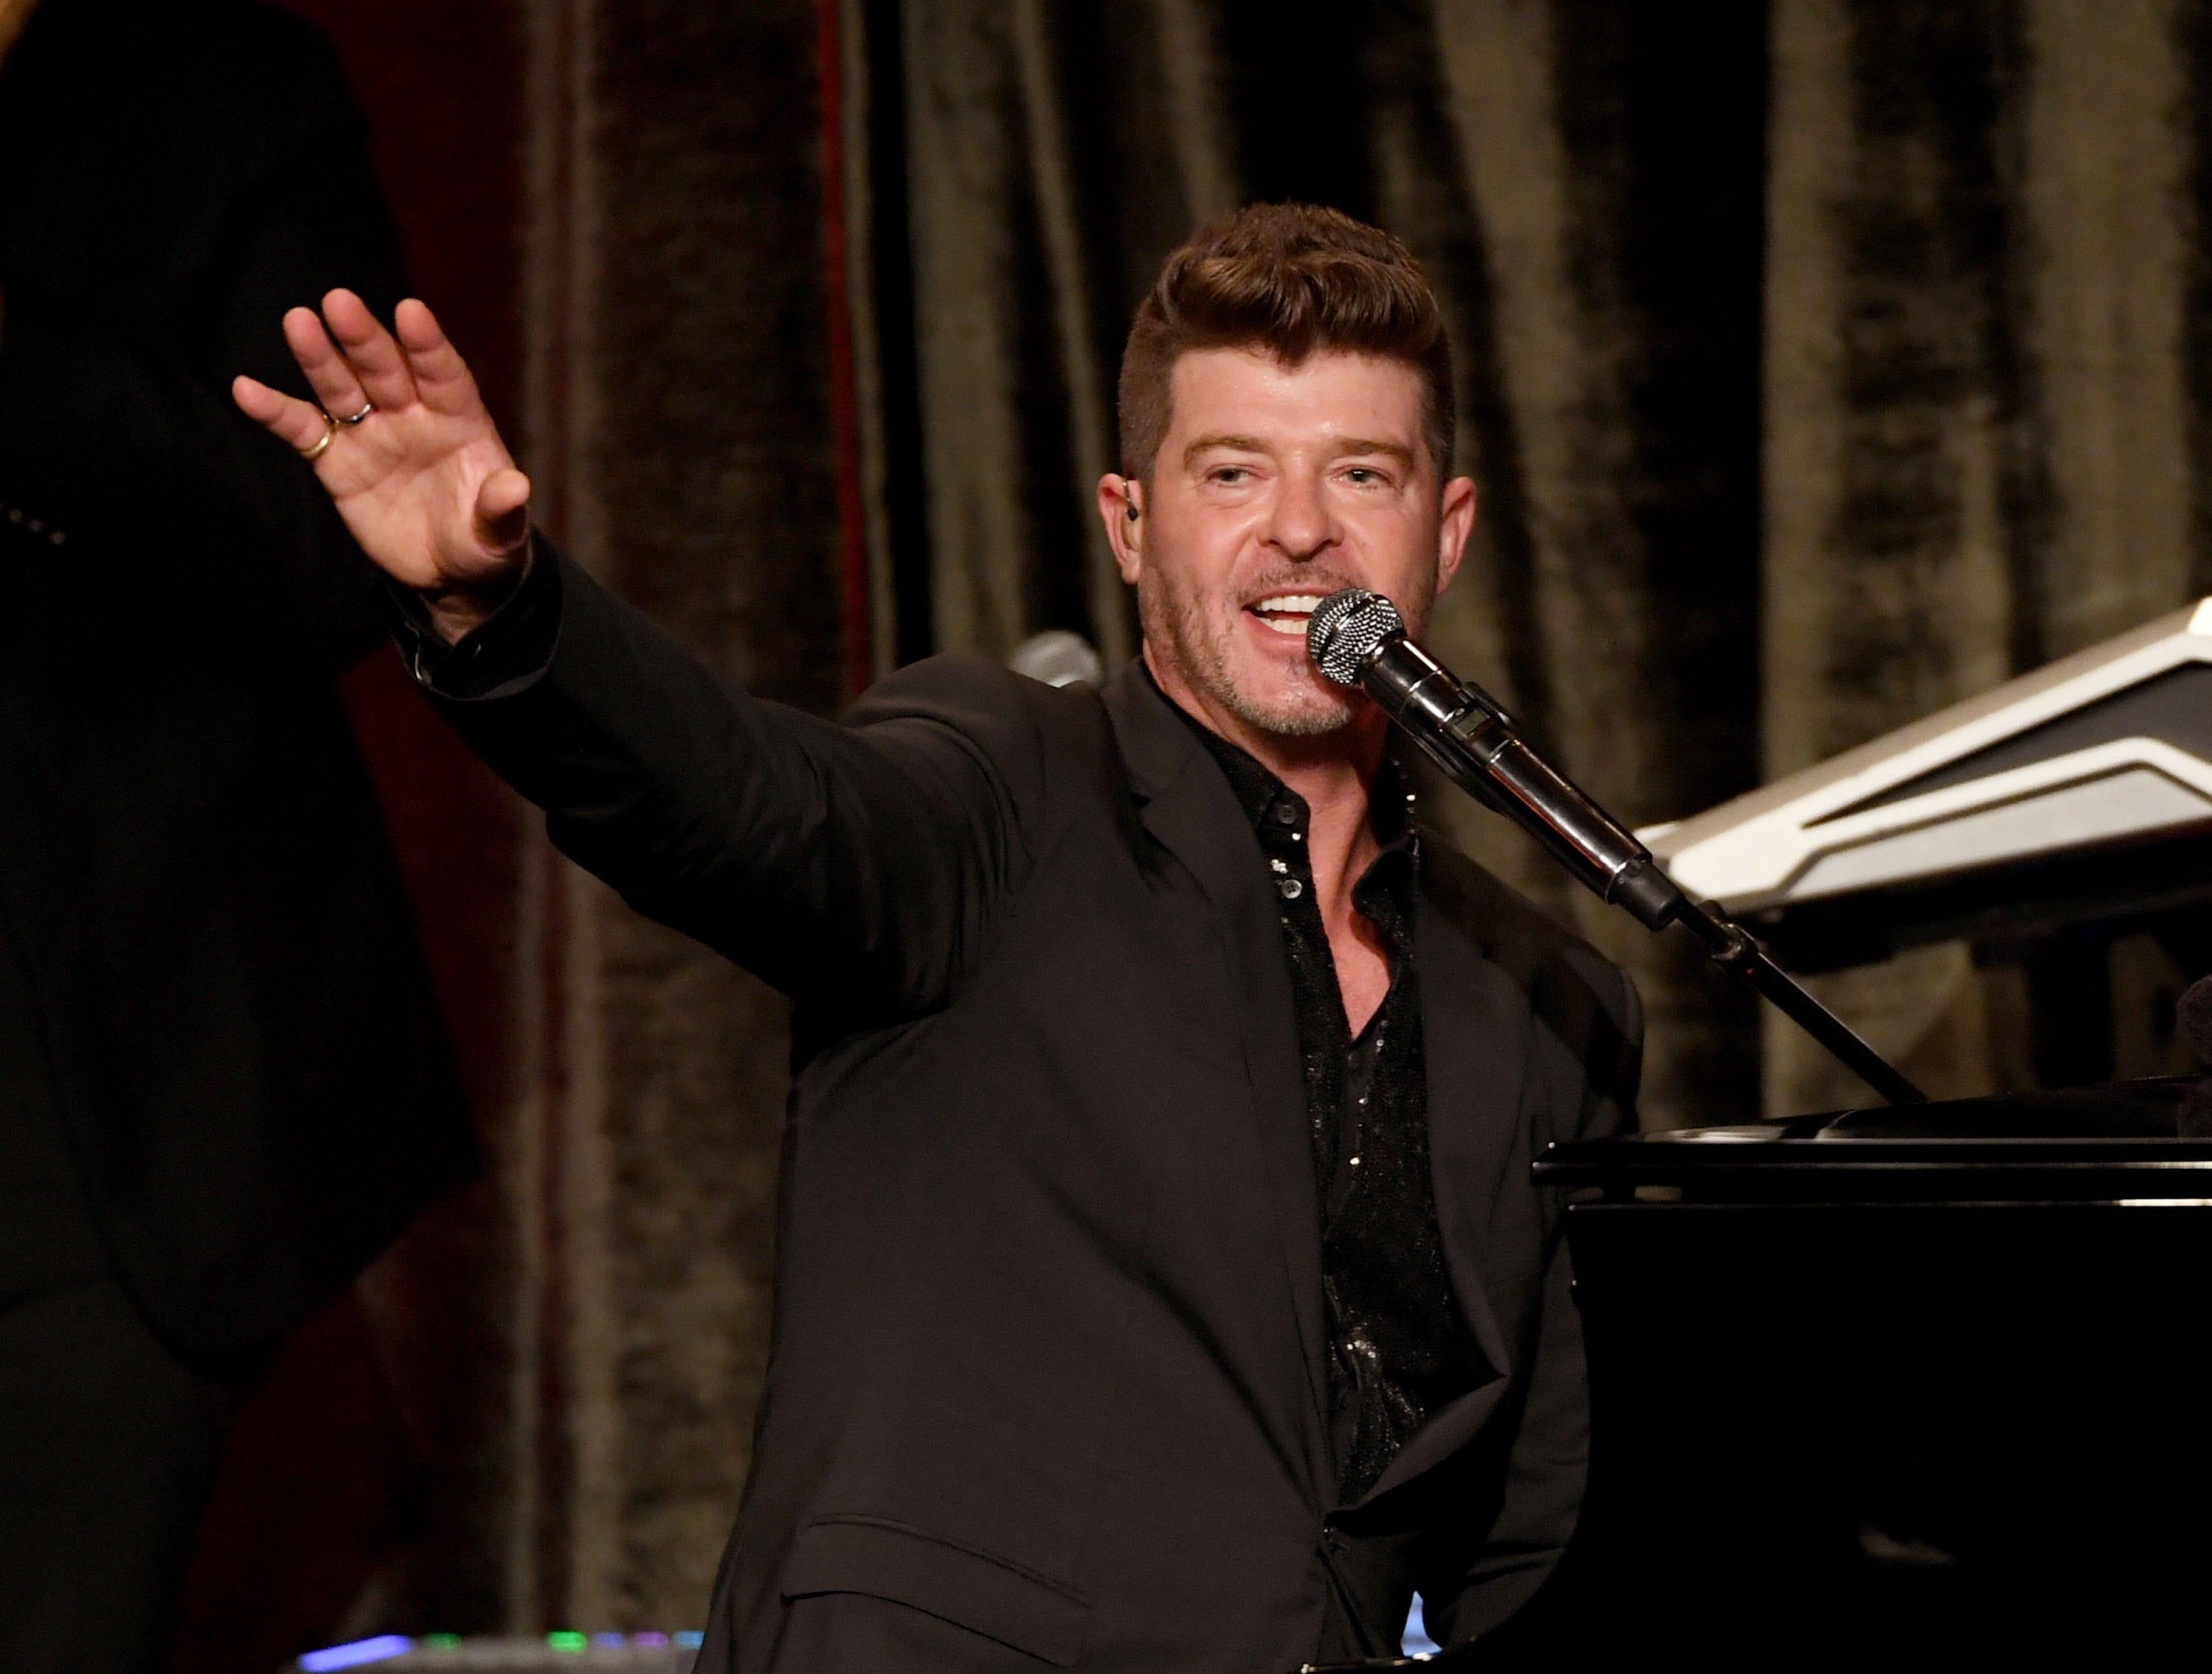 BEVERLY HILLS, CALIFORNIA - MAY 19: Robin Thicke performs onstage at the American Icon Awards at the Beverly Wilshire Four Seasons Hotel on May 19, 2019 in Beverly Hills, California. (Photo by Kevin Winter/Getty Images) ORG XMIT: 775341900 ORIG FILE ID: 1150459066